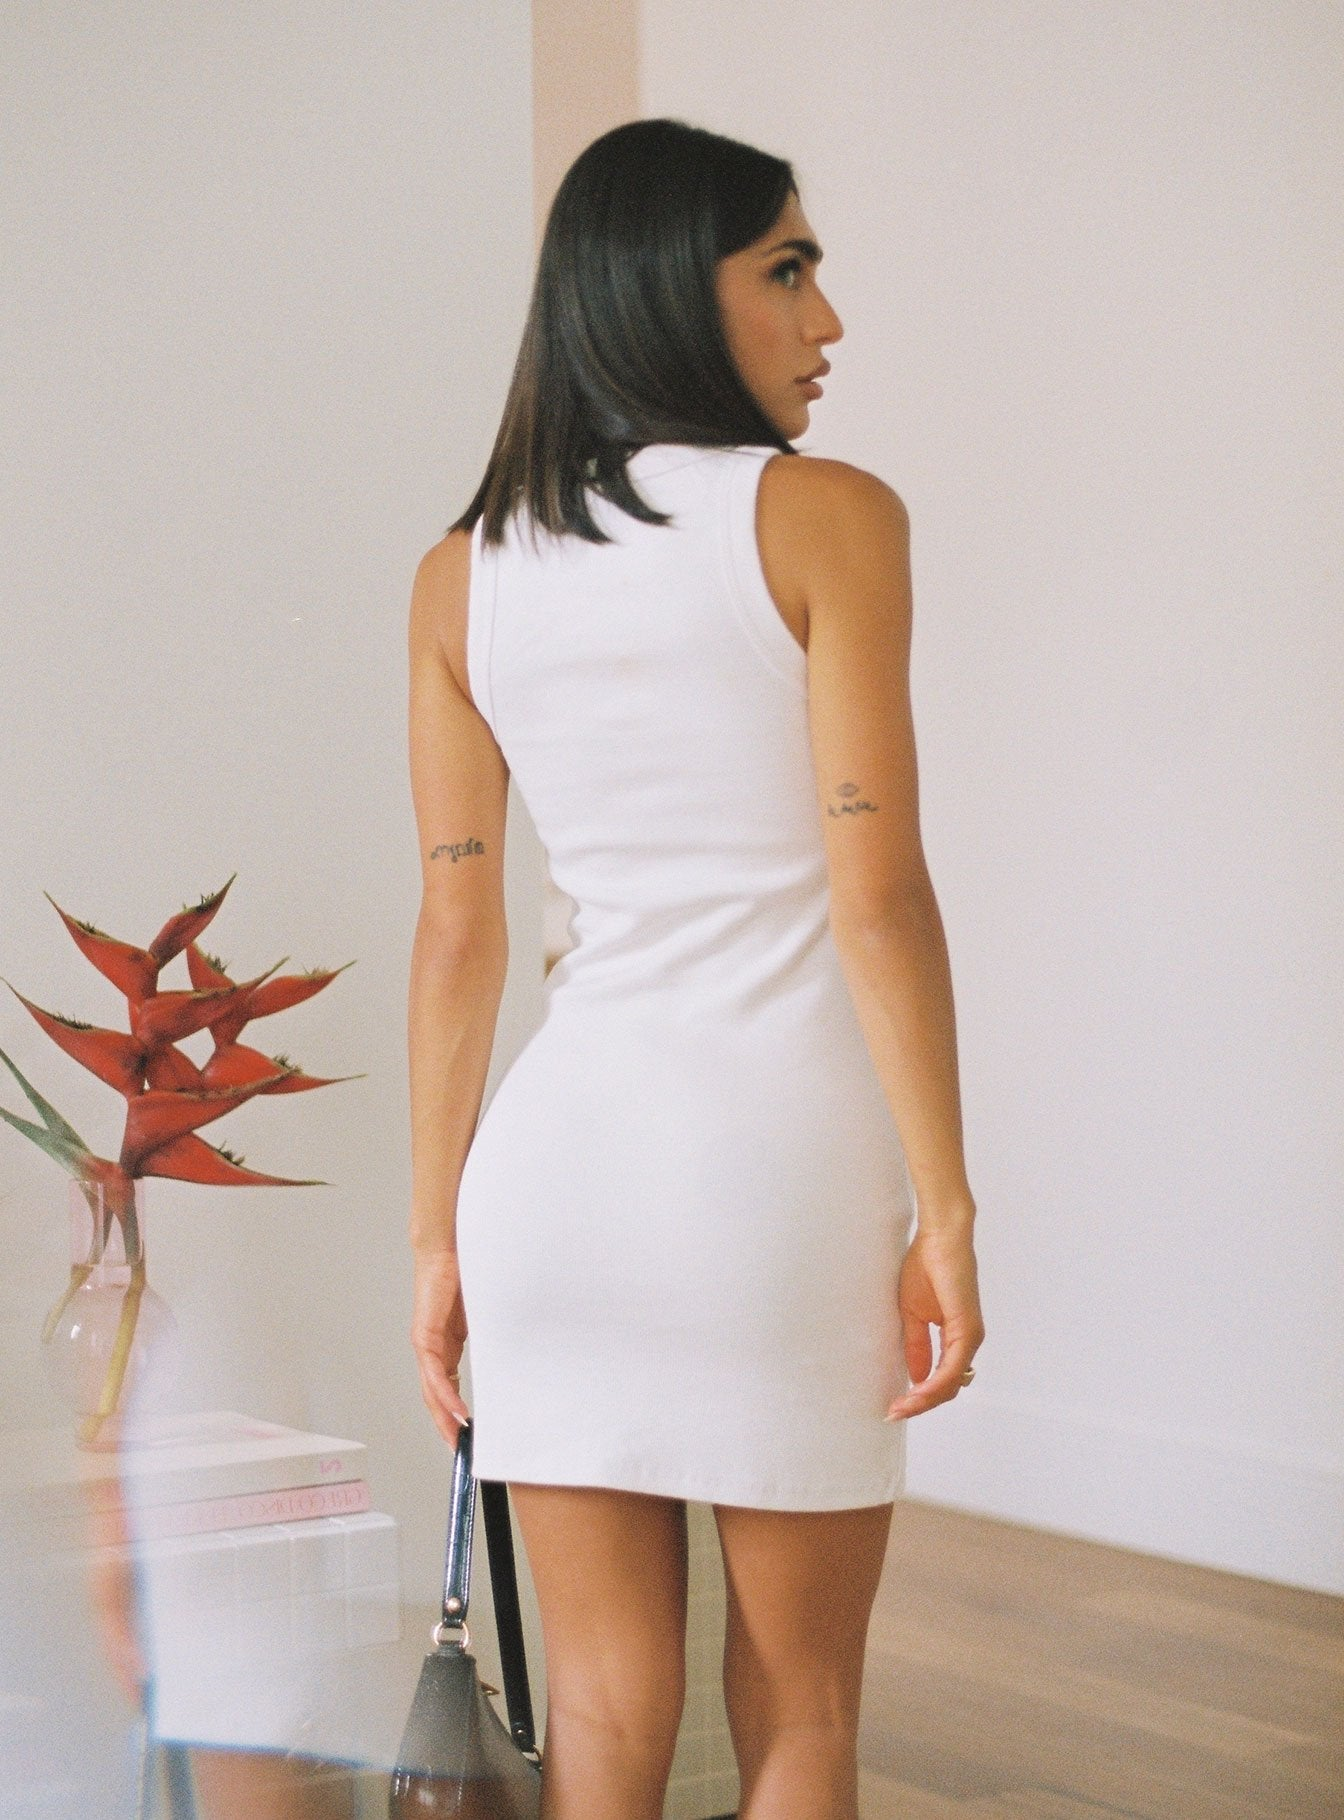 The Classic Tank Dress White - Organically Grown Cotton